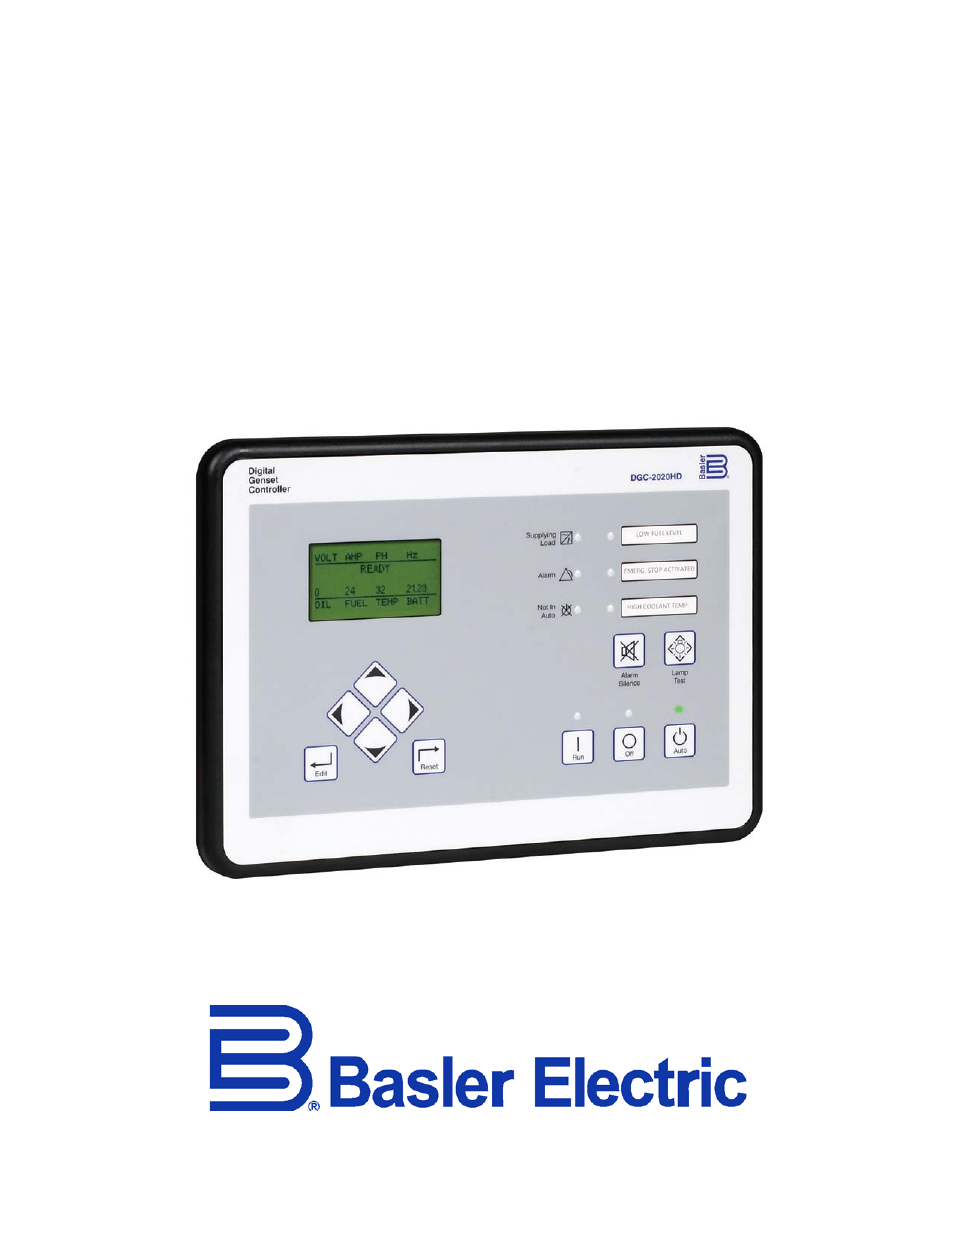 basler electric dgc 2020hd page1 basler electric dgc 2020hd user manual 404 pages  at soozxer.org